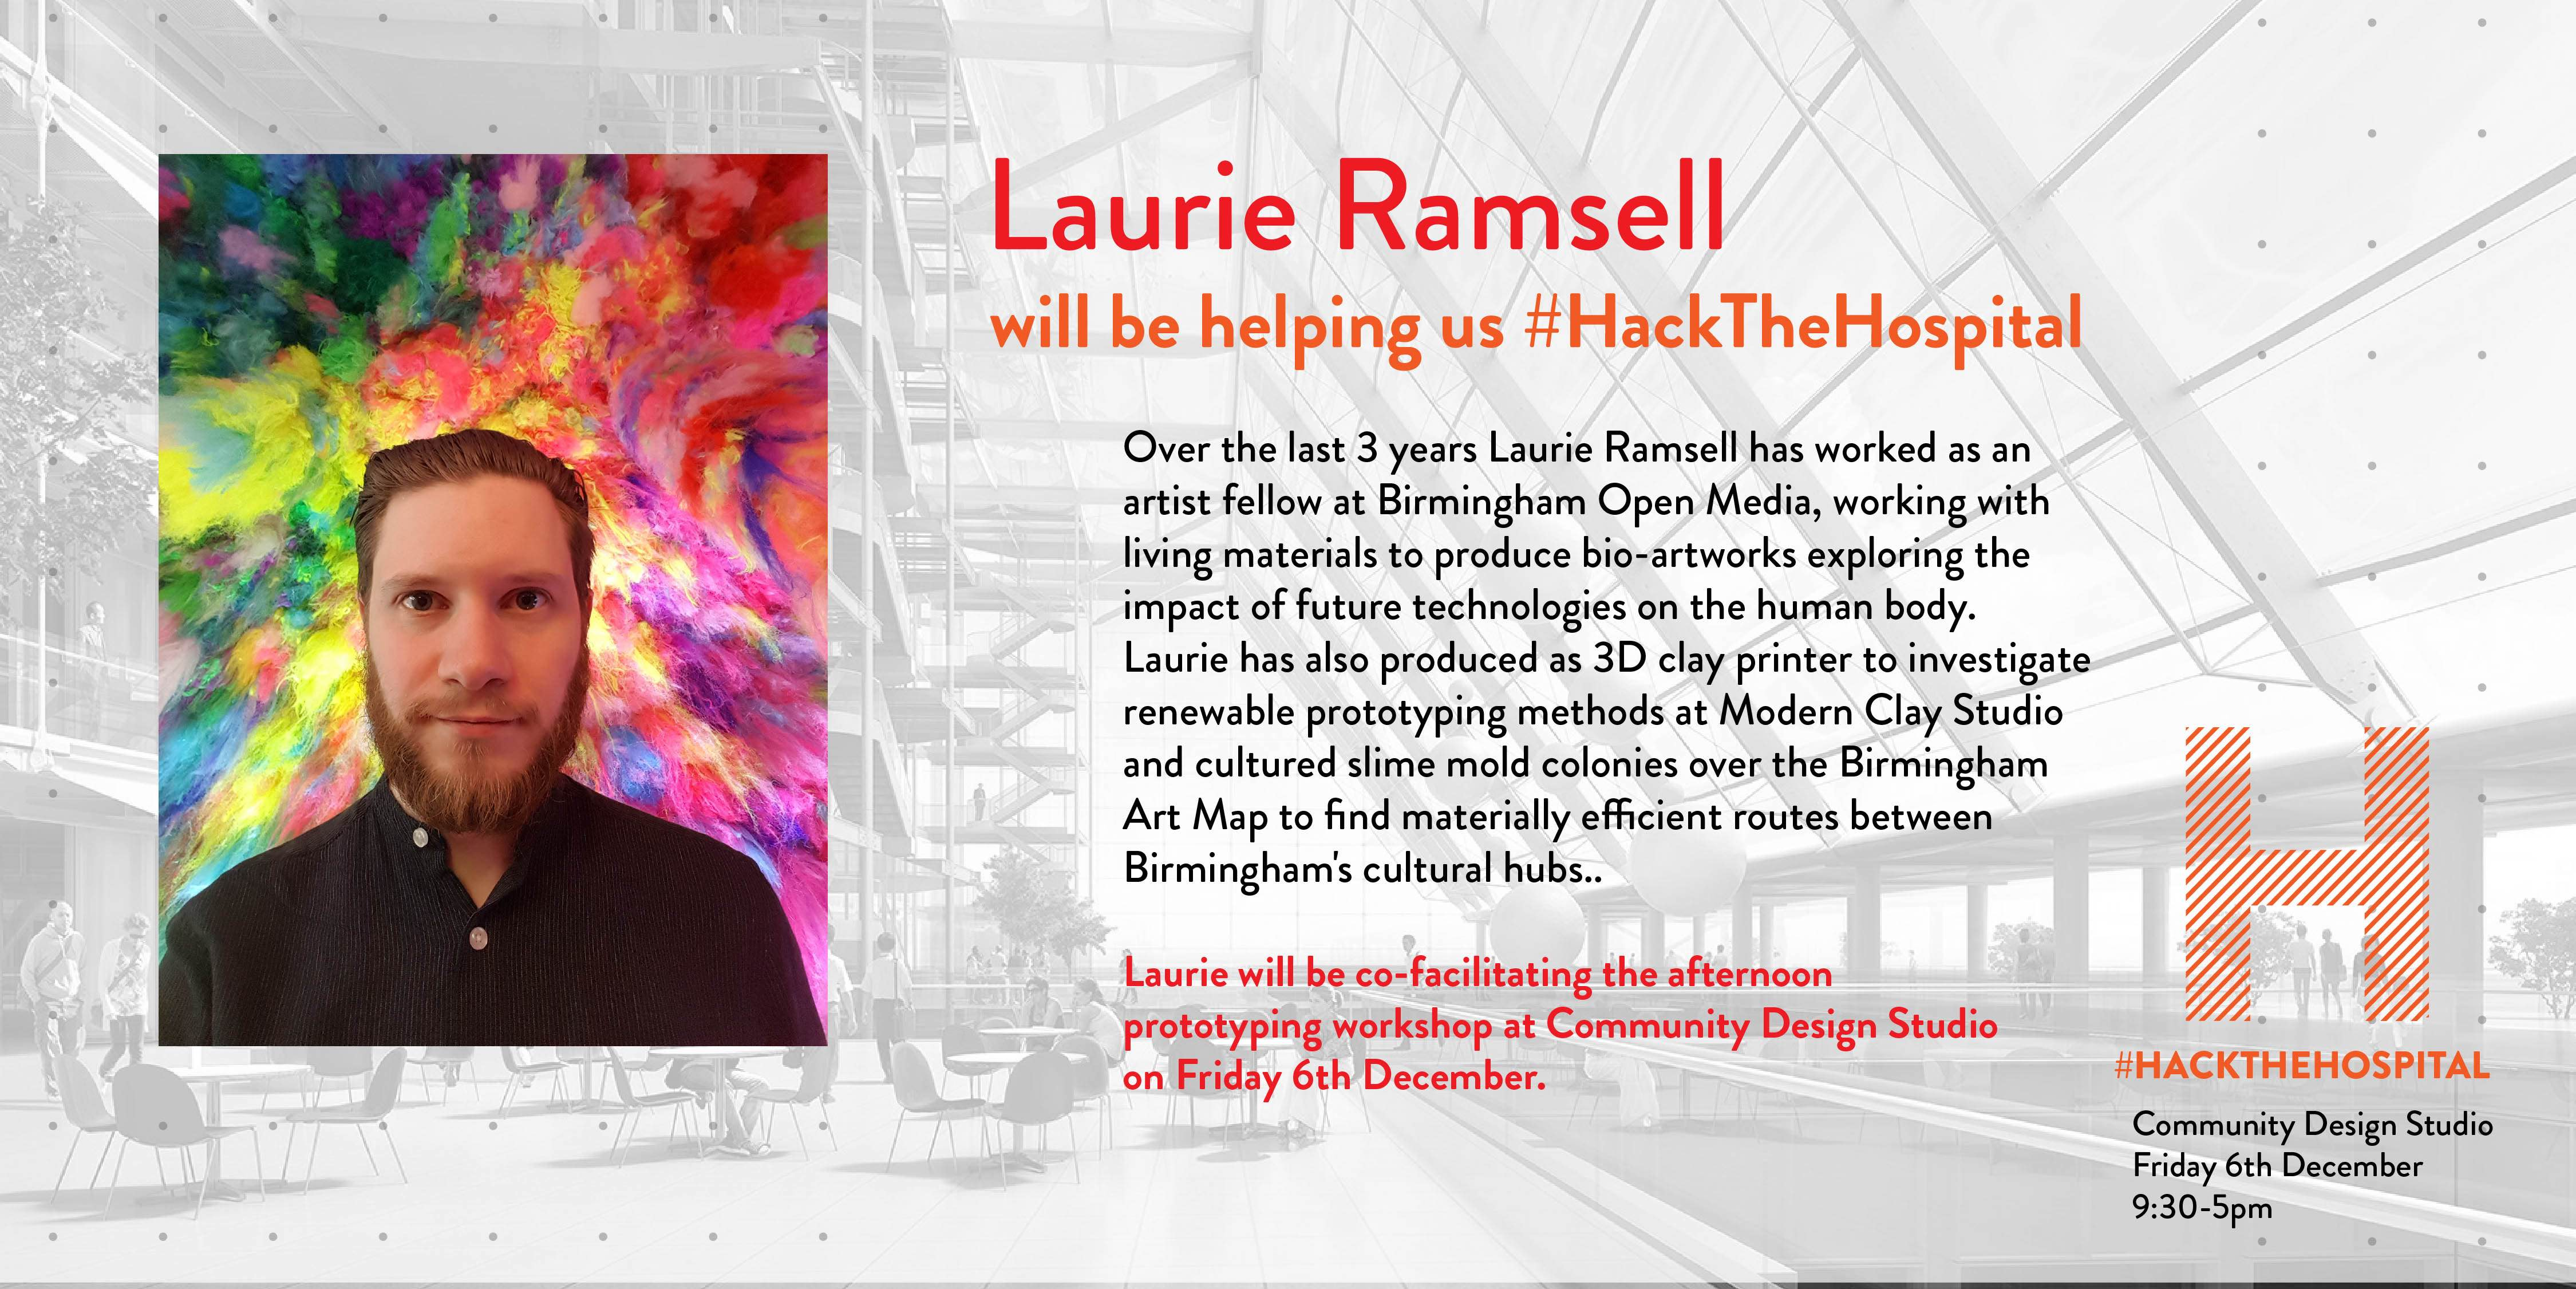 Laurie Ramsell